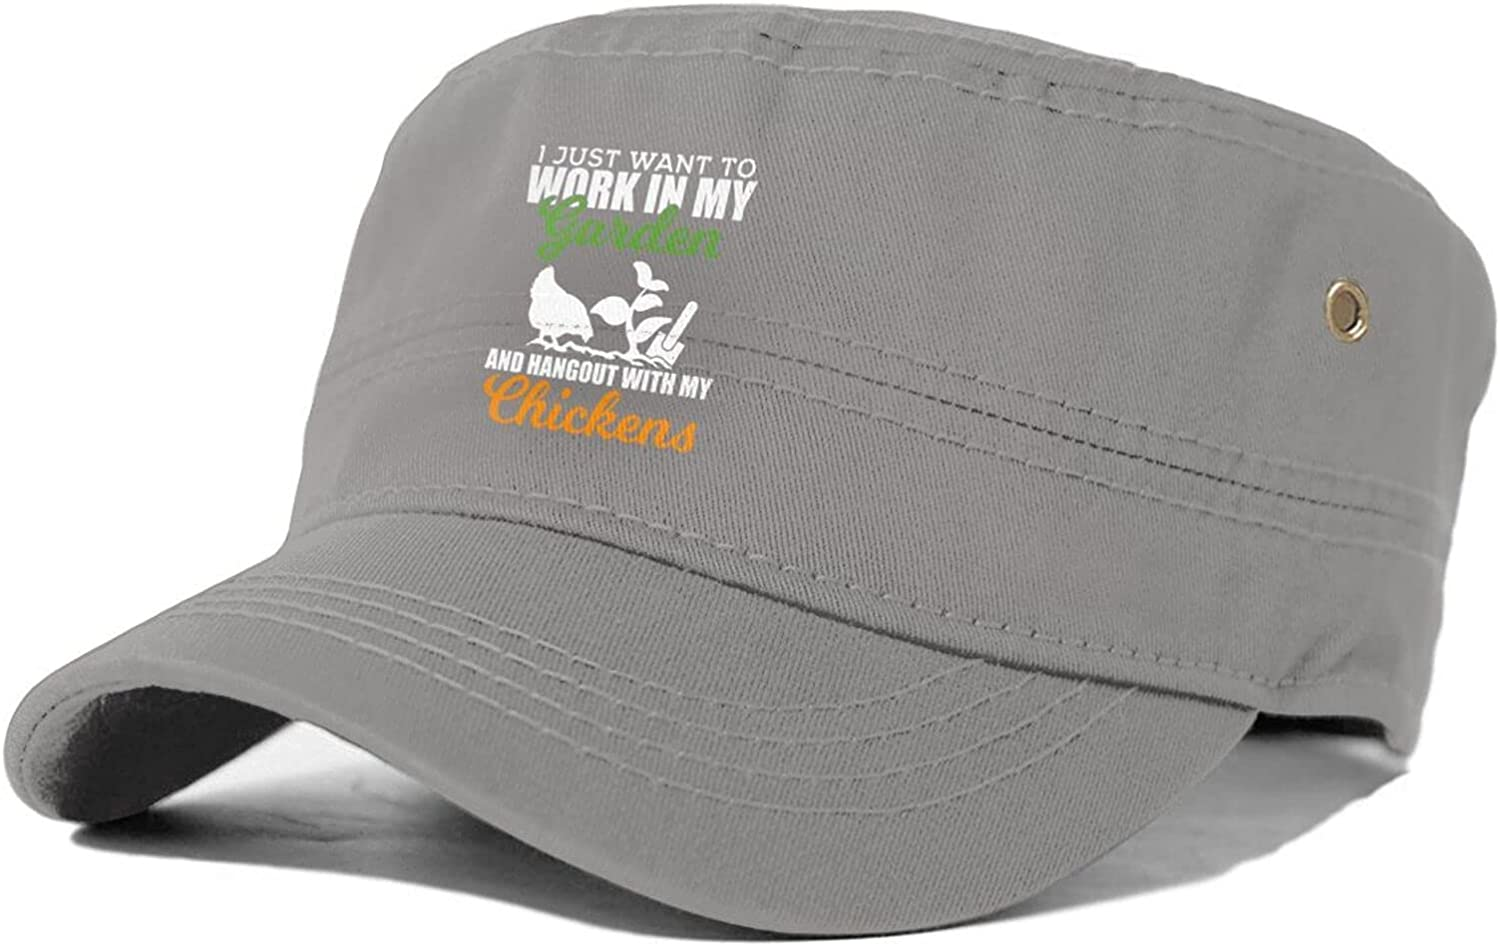 I Just Want to Work in My Garden Hangout with My Chickens Man's Woman's Unisex Adult Flat Cap Military Style Cap